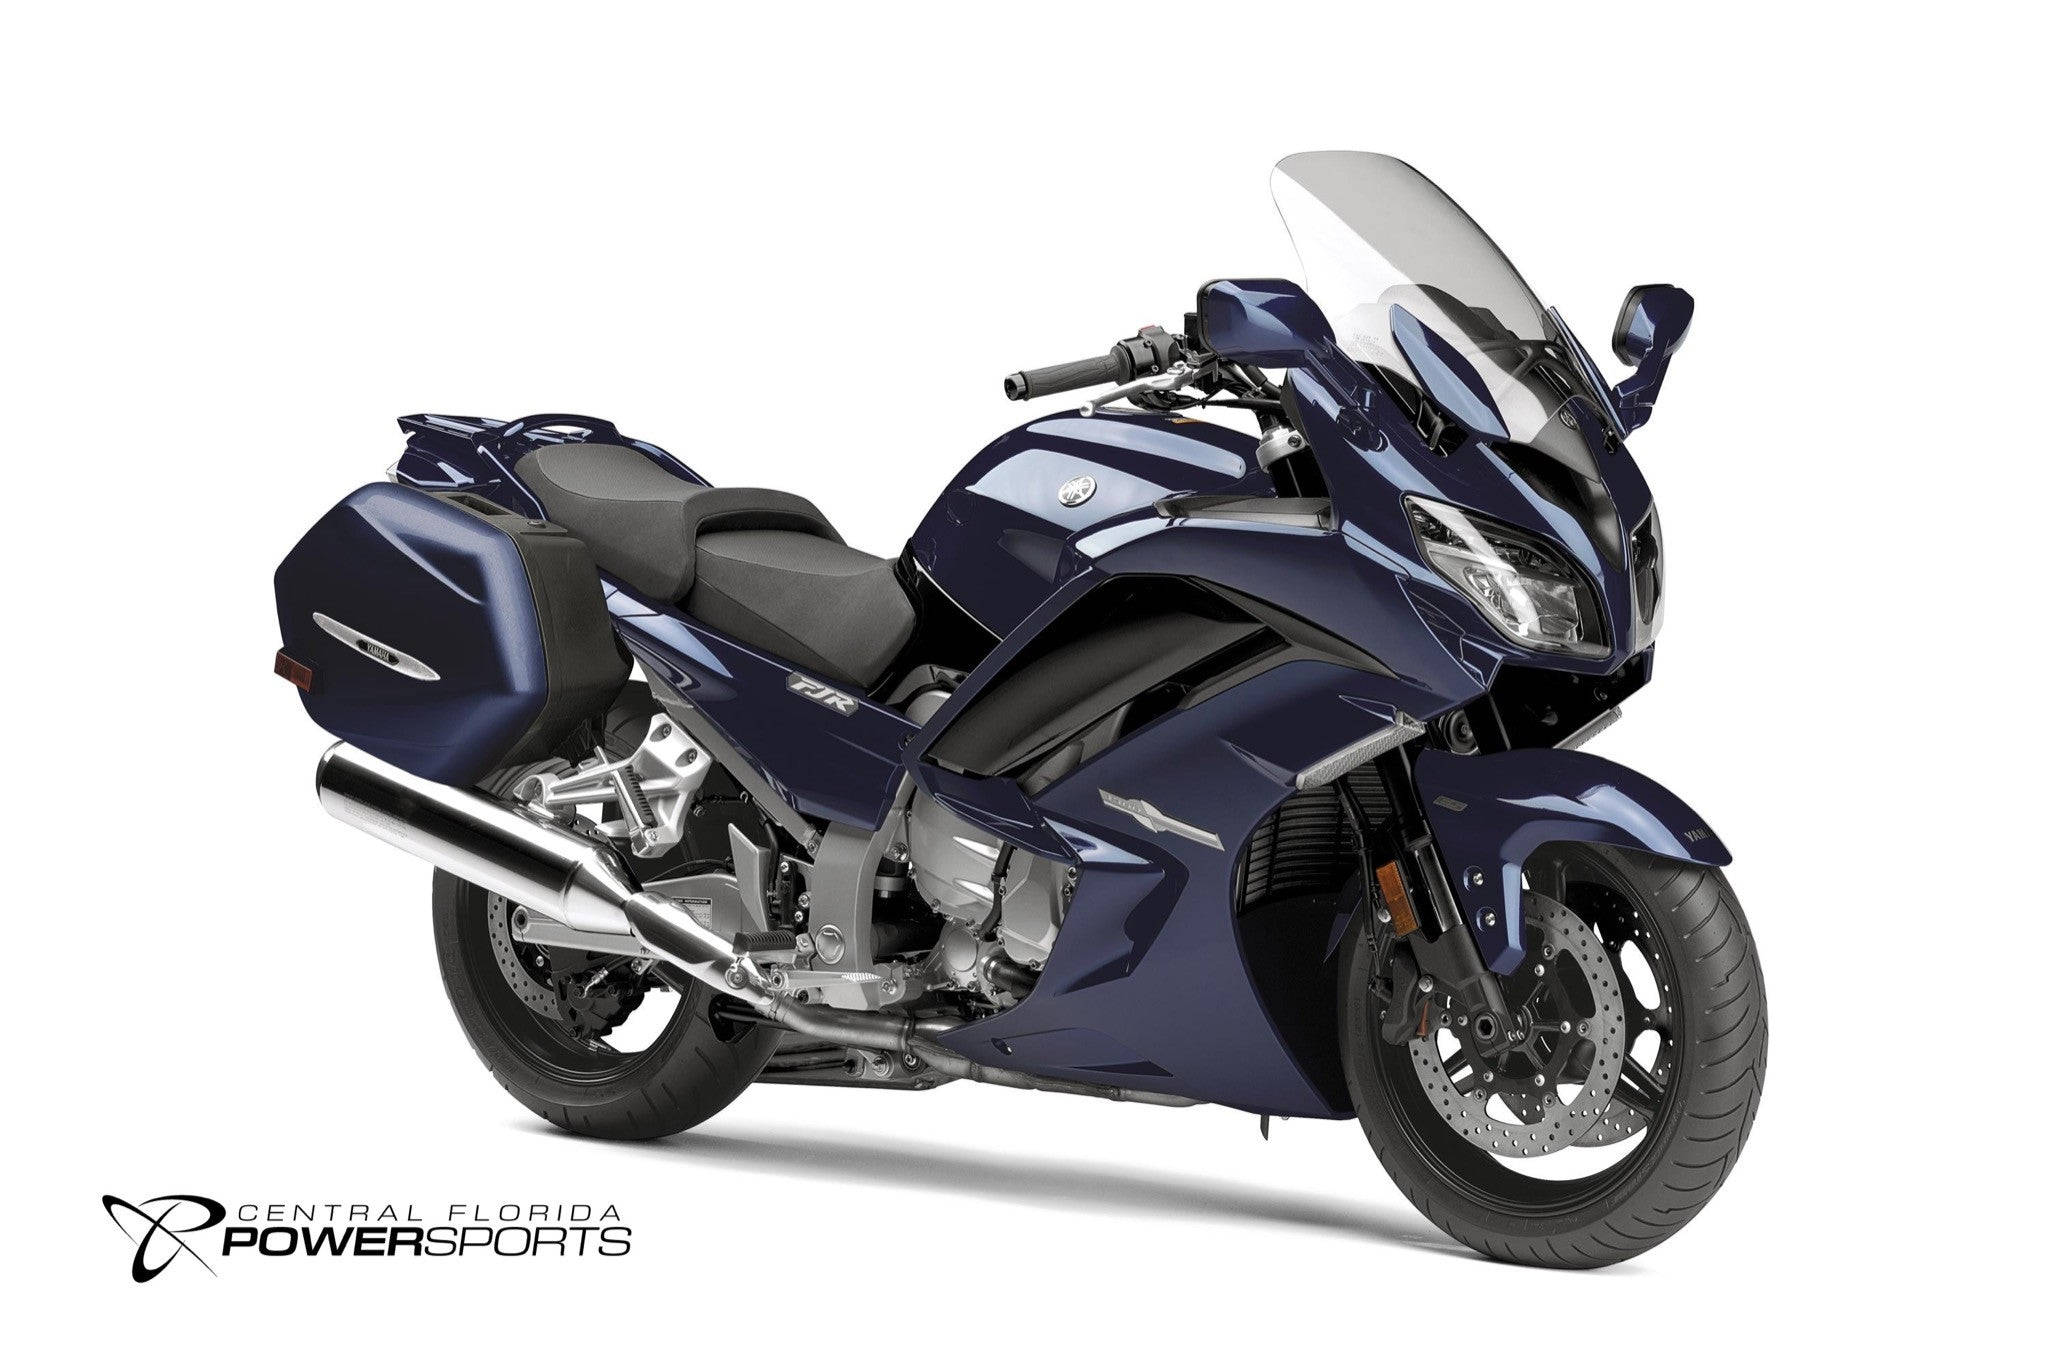 2017 yamaha fjr1300 es motorcycle central florida powersports. Black Bedroom Furniture Sets. Home Design Ideas